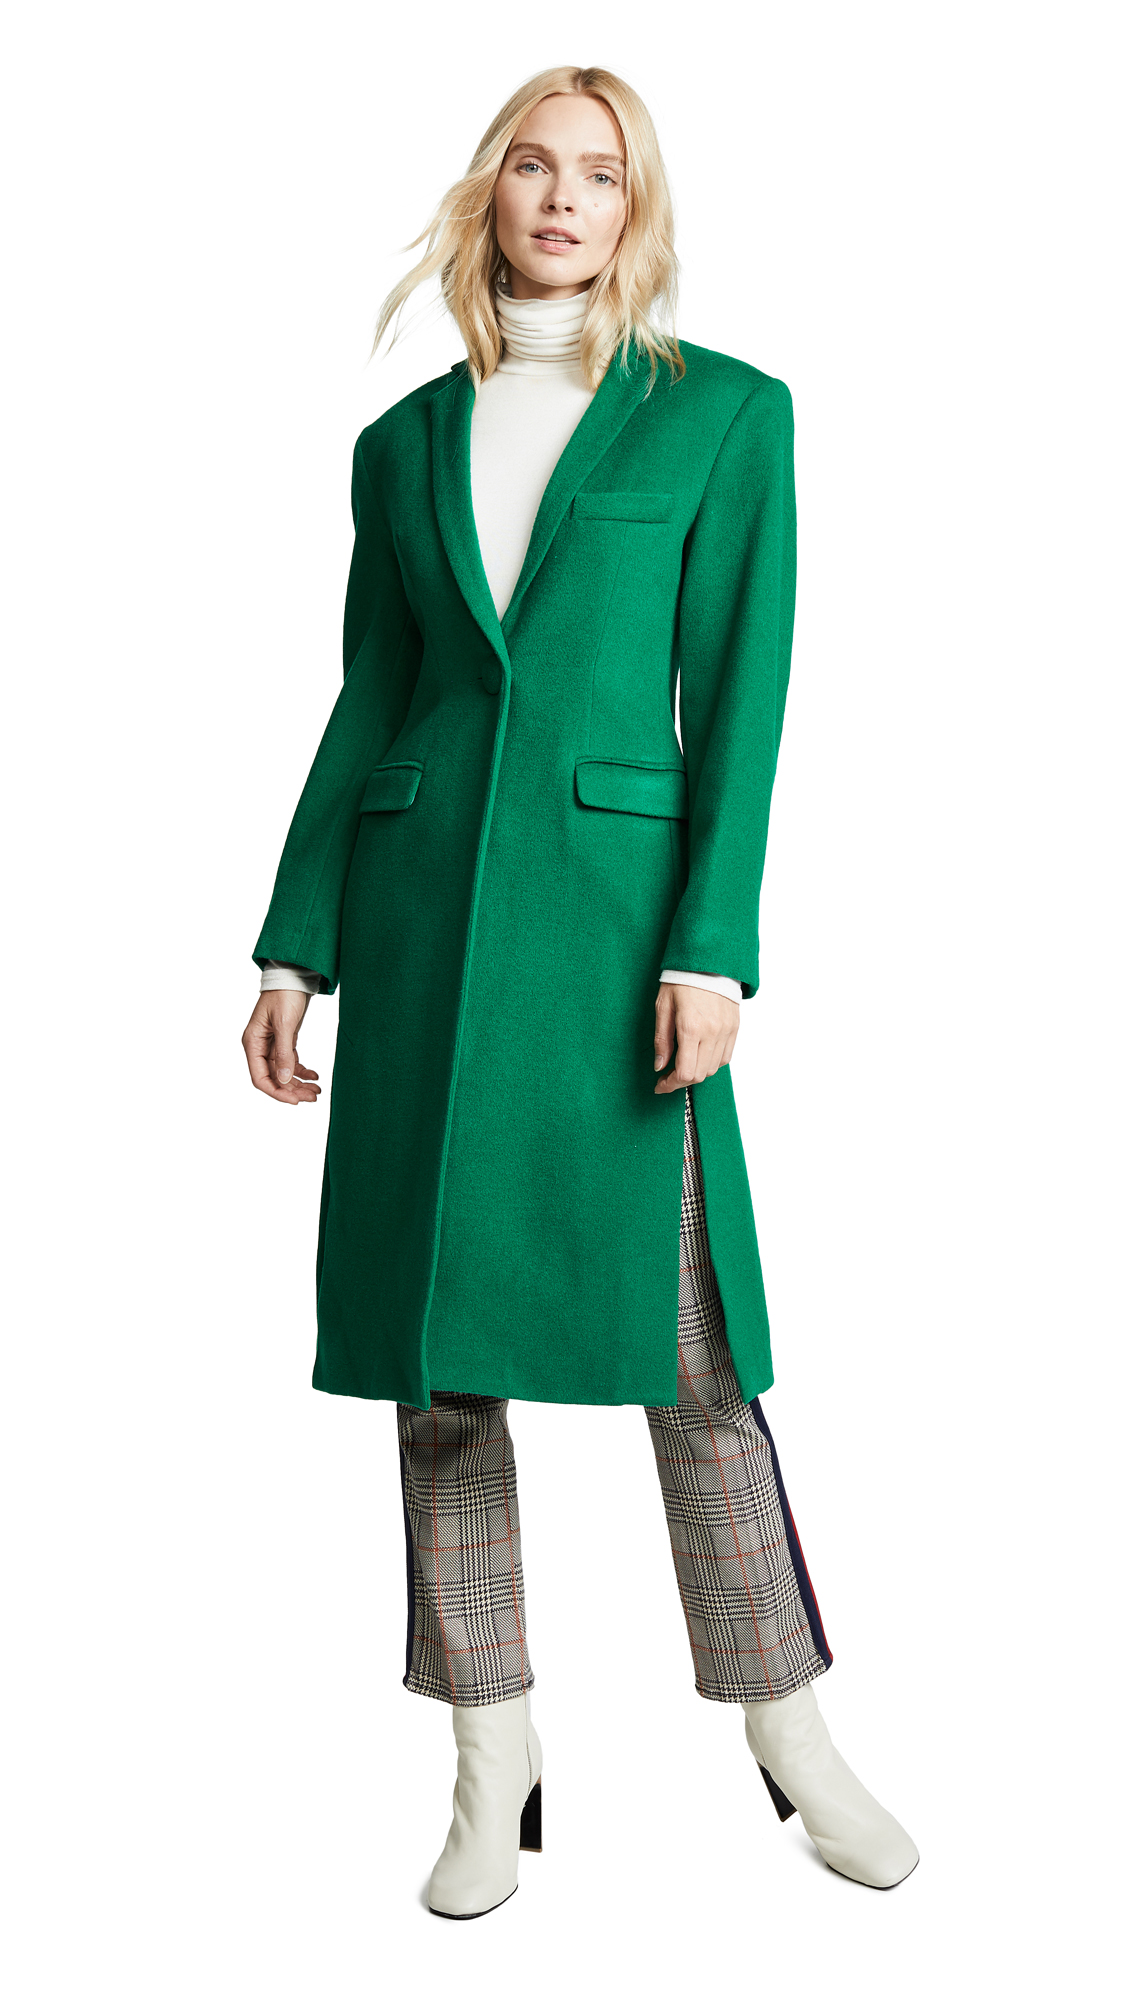 Maggie Marilyn Trust Your Instincts Coat In Bright Green